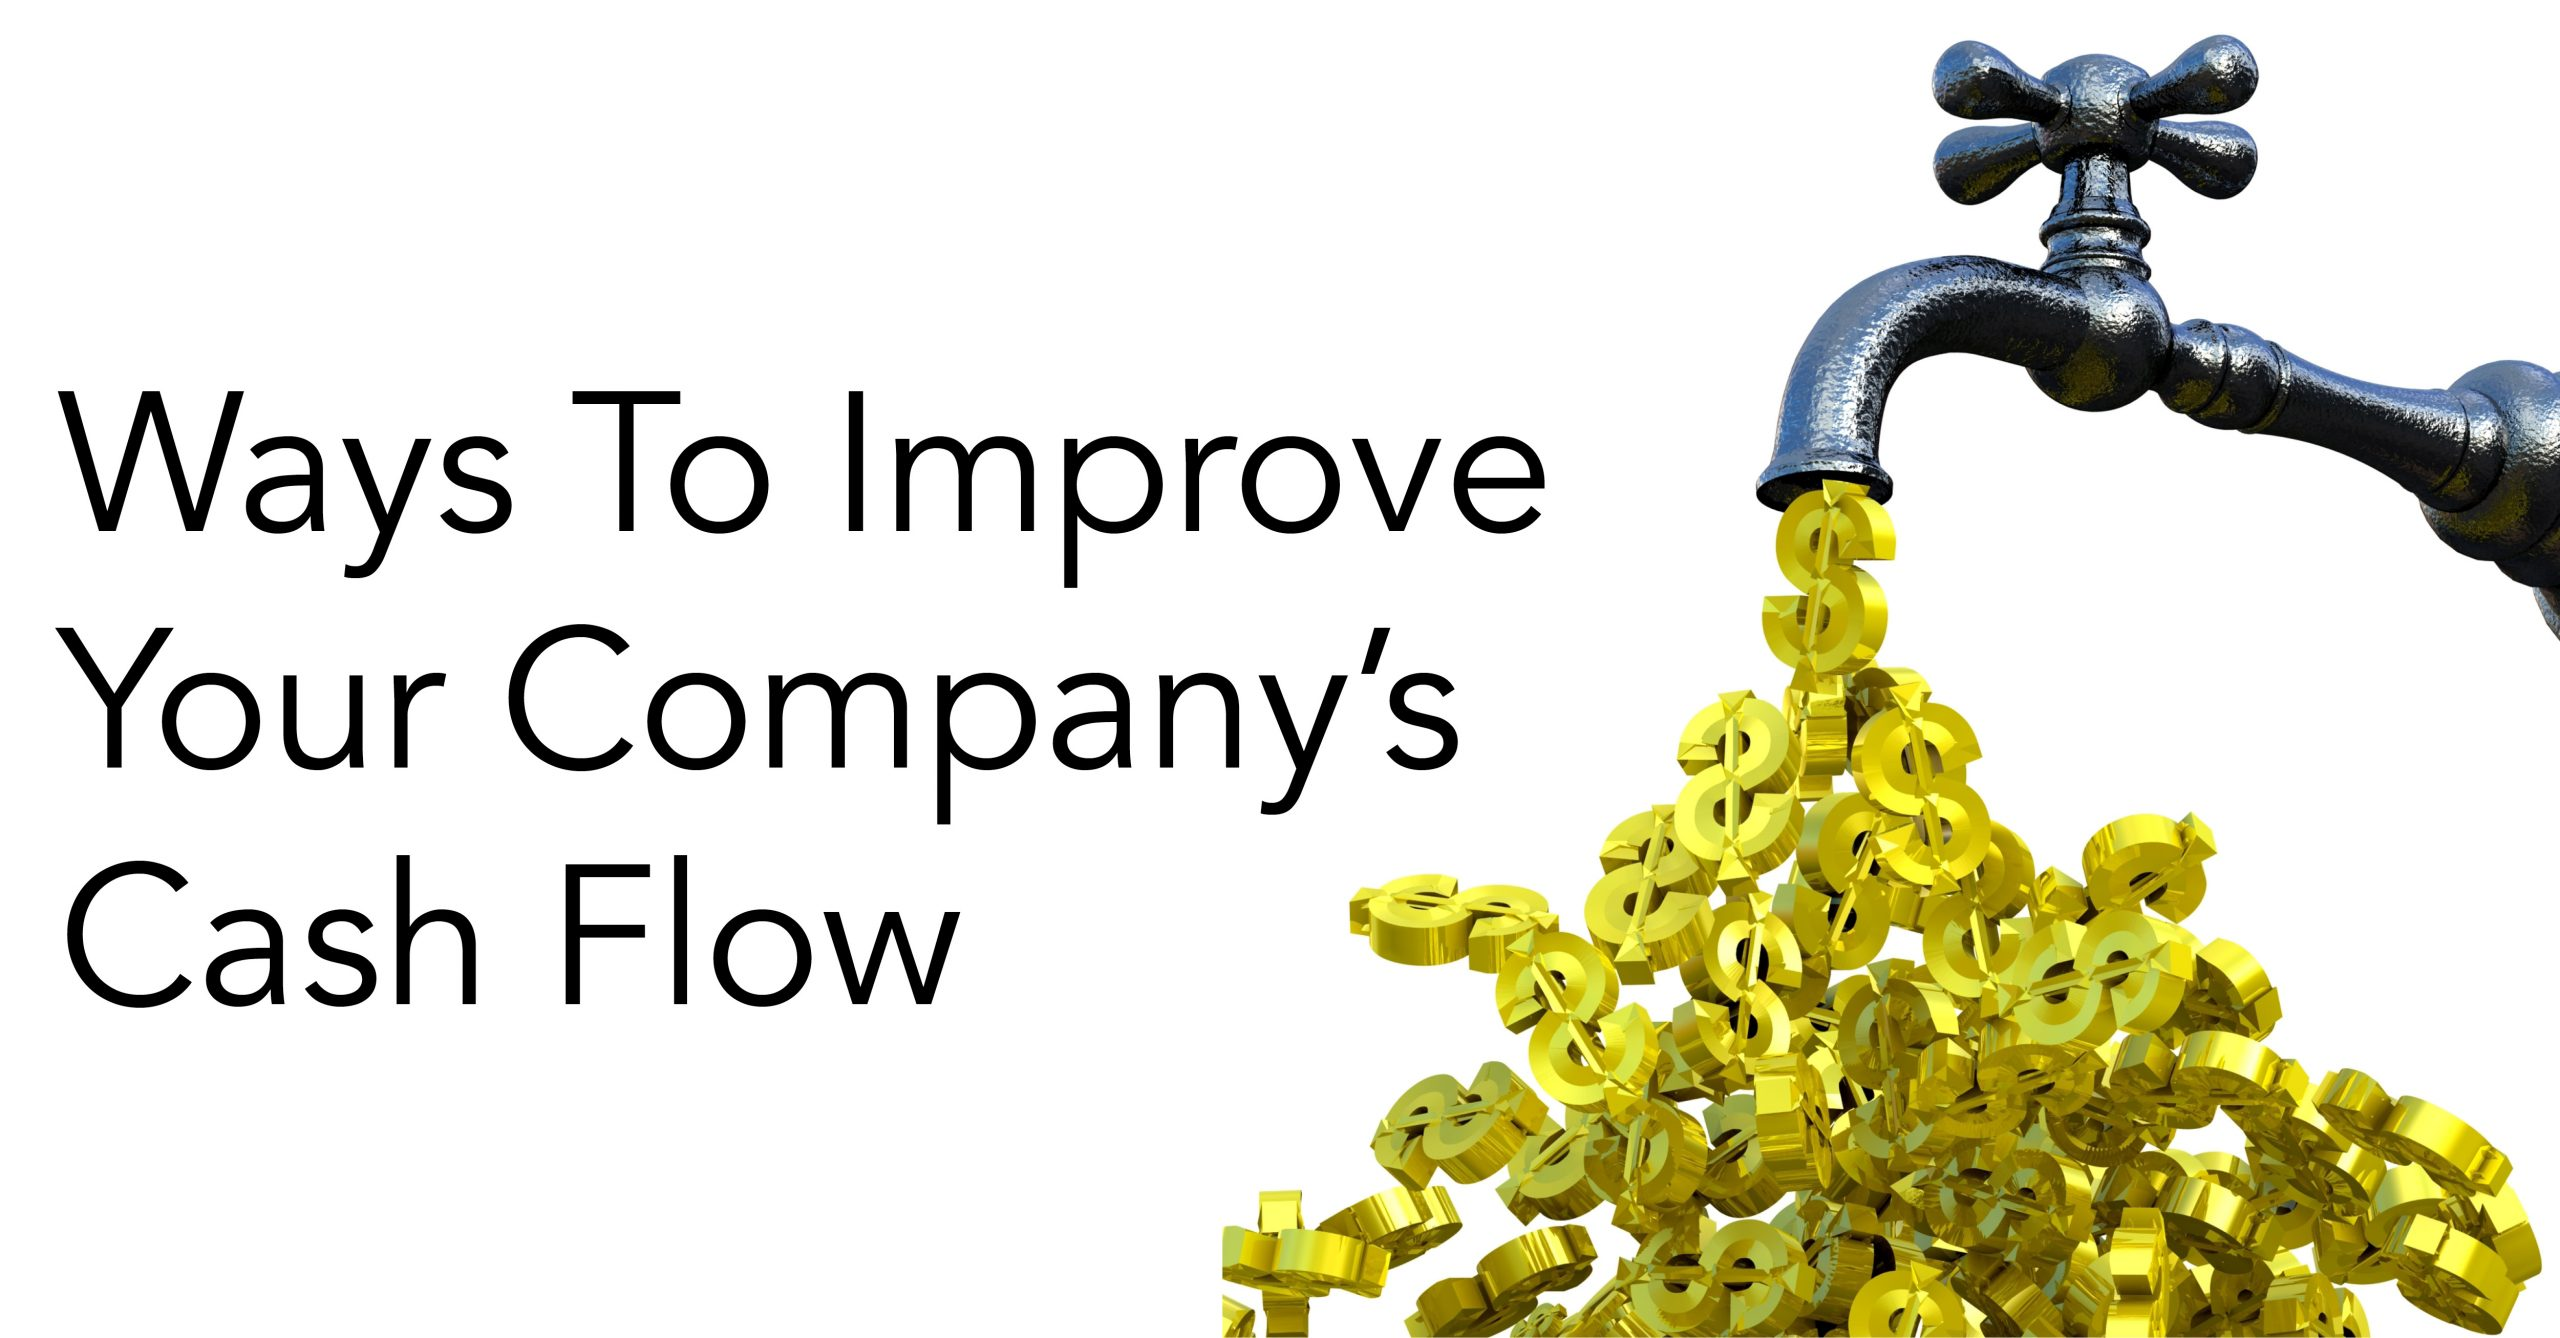 Finding Ways To Improve Your Company's Cash Flow